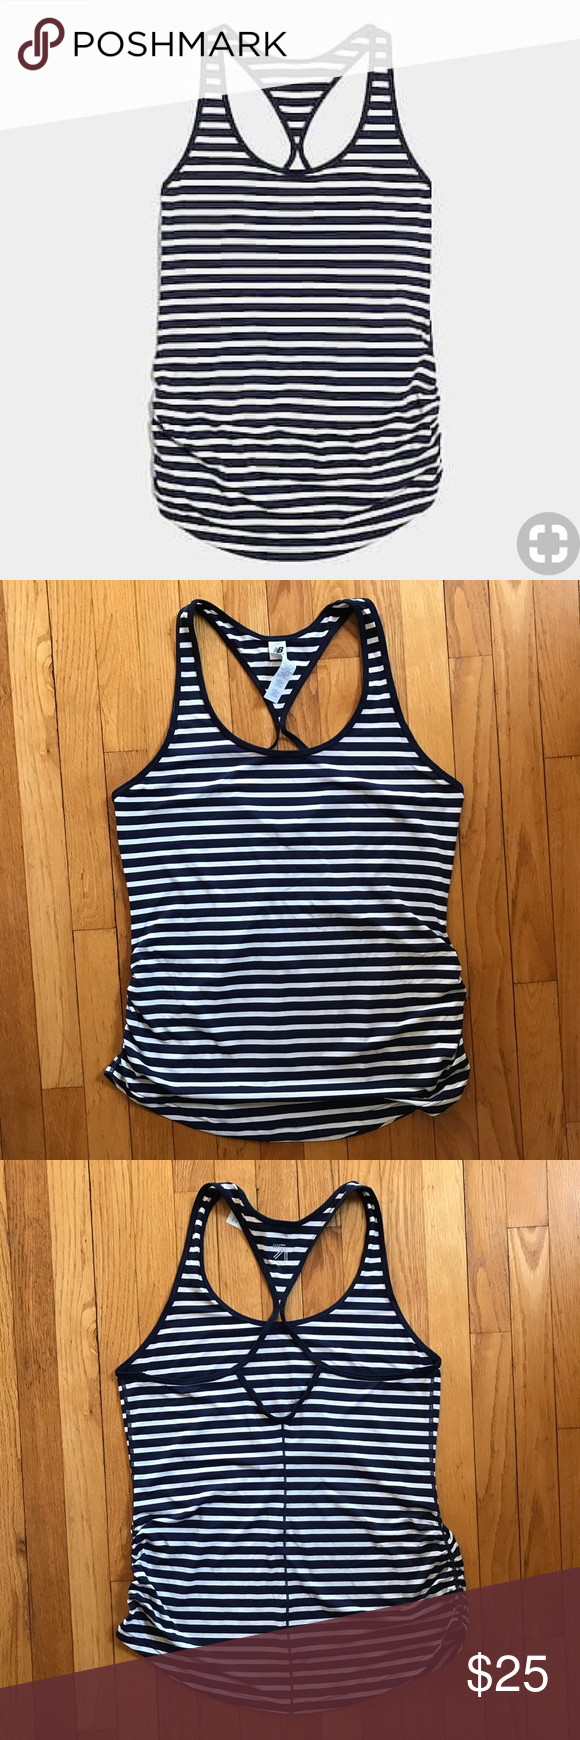 9761d812242a3 New Balance for J. Crew Perfect Tank Top - L Never worn, perfect ...